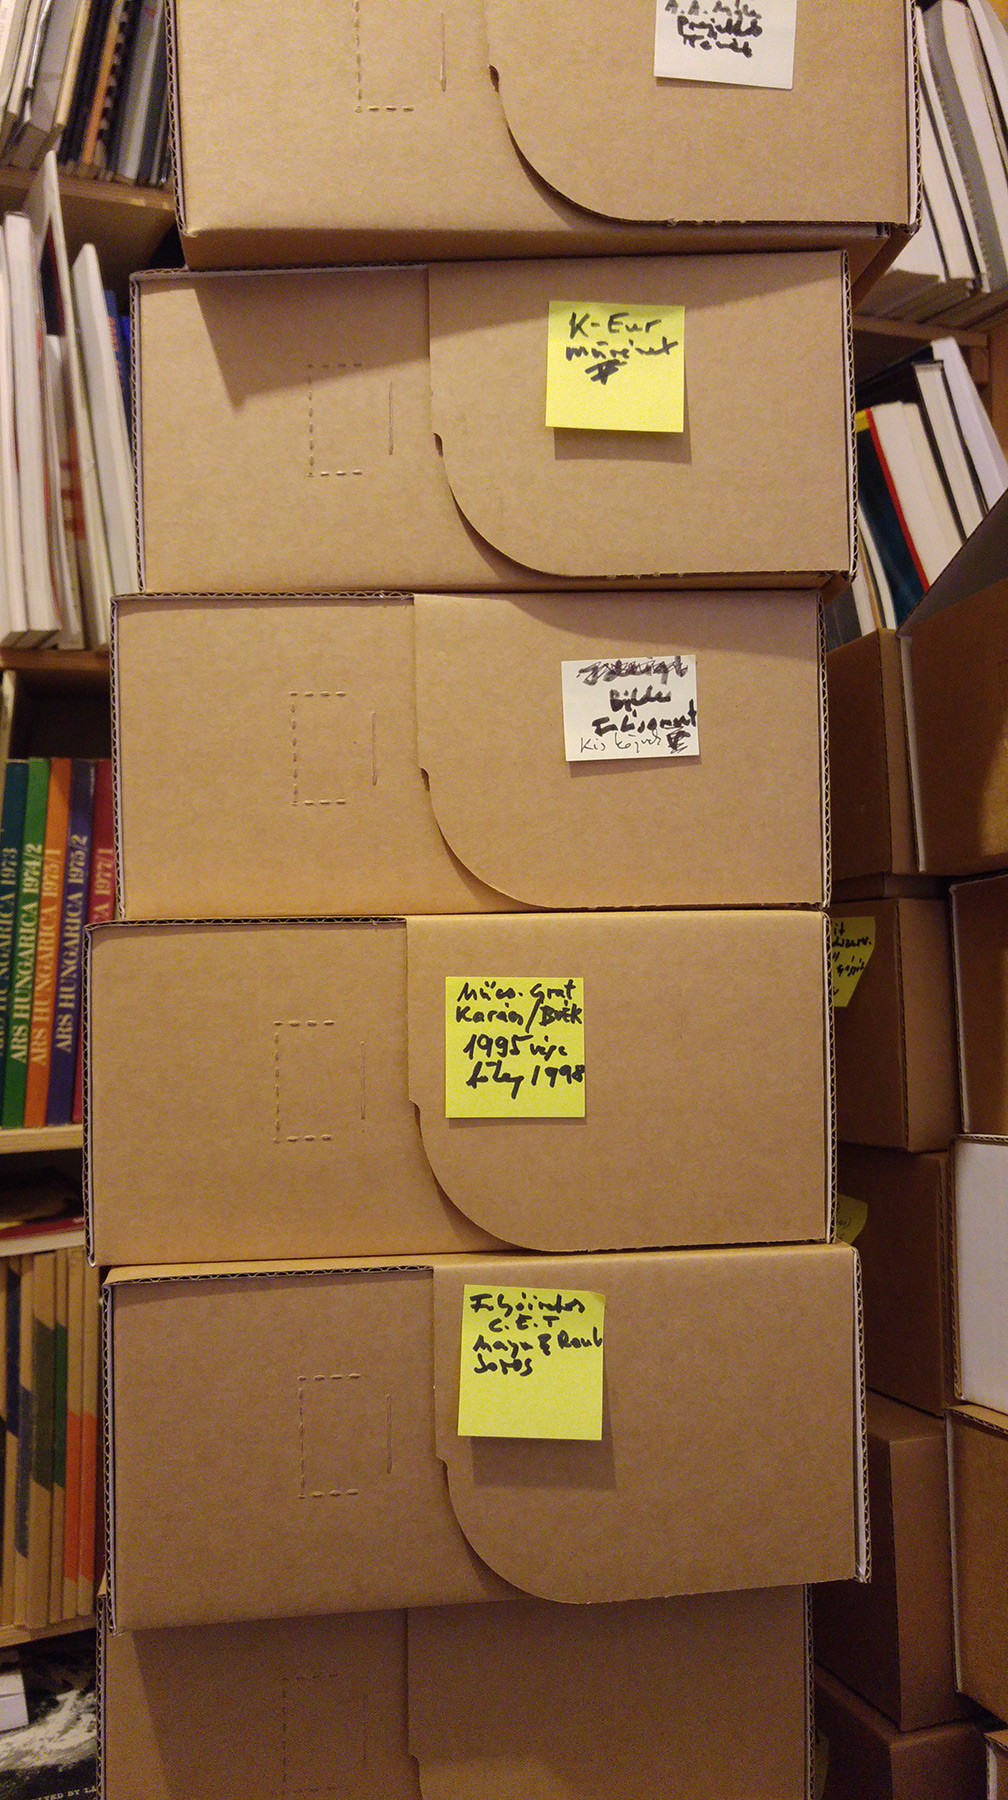 Part of the archive is ready to be transported.